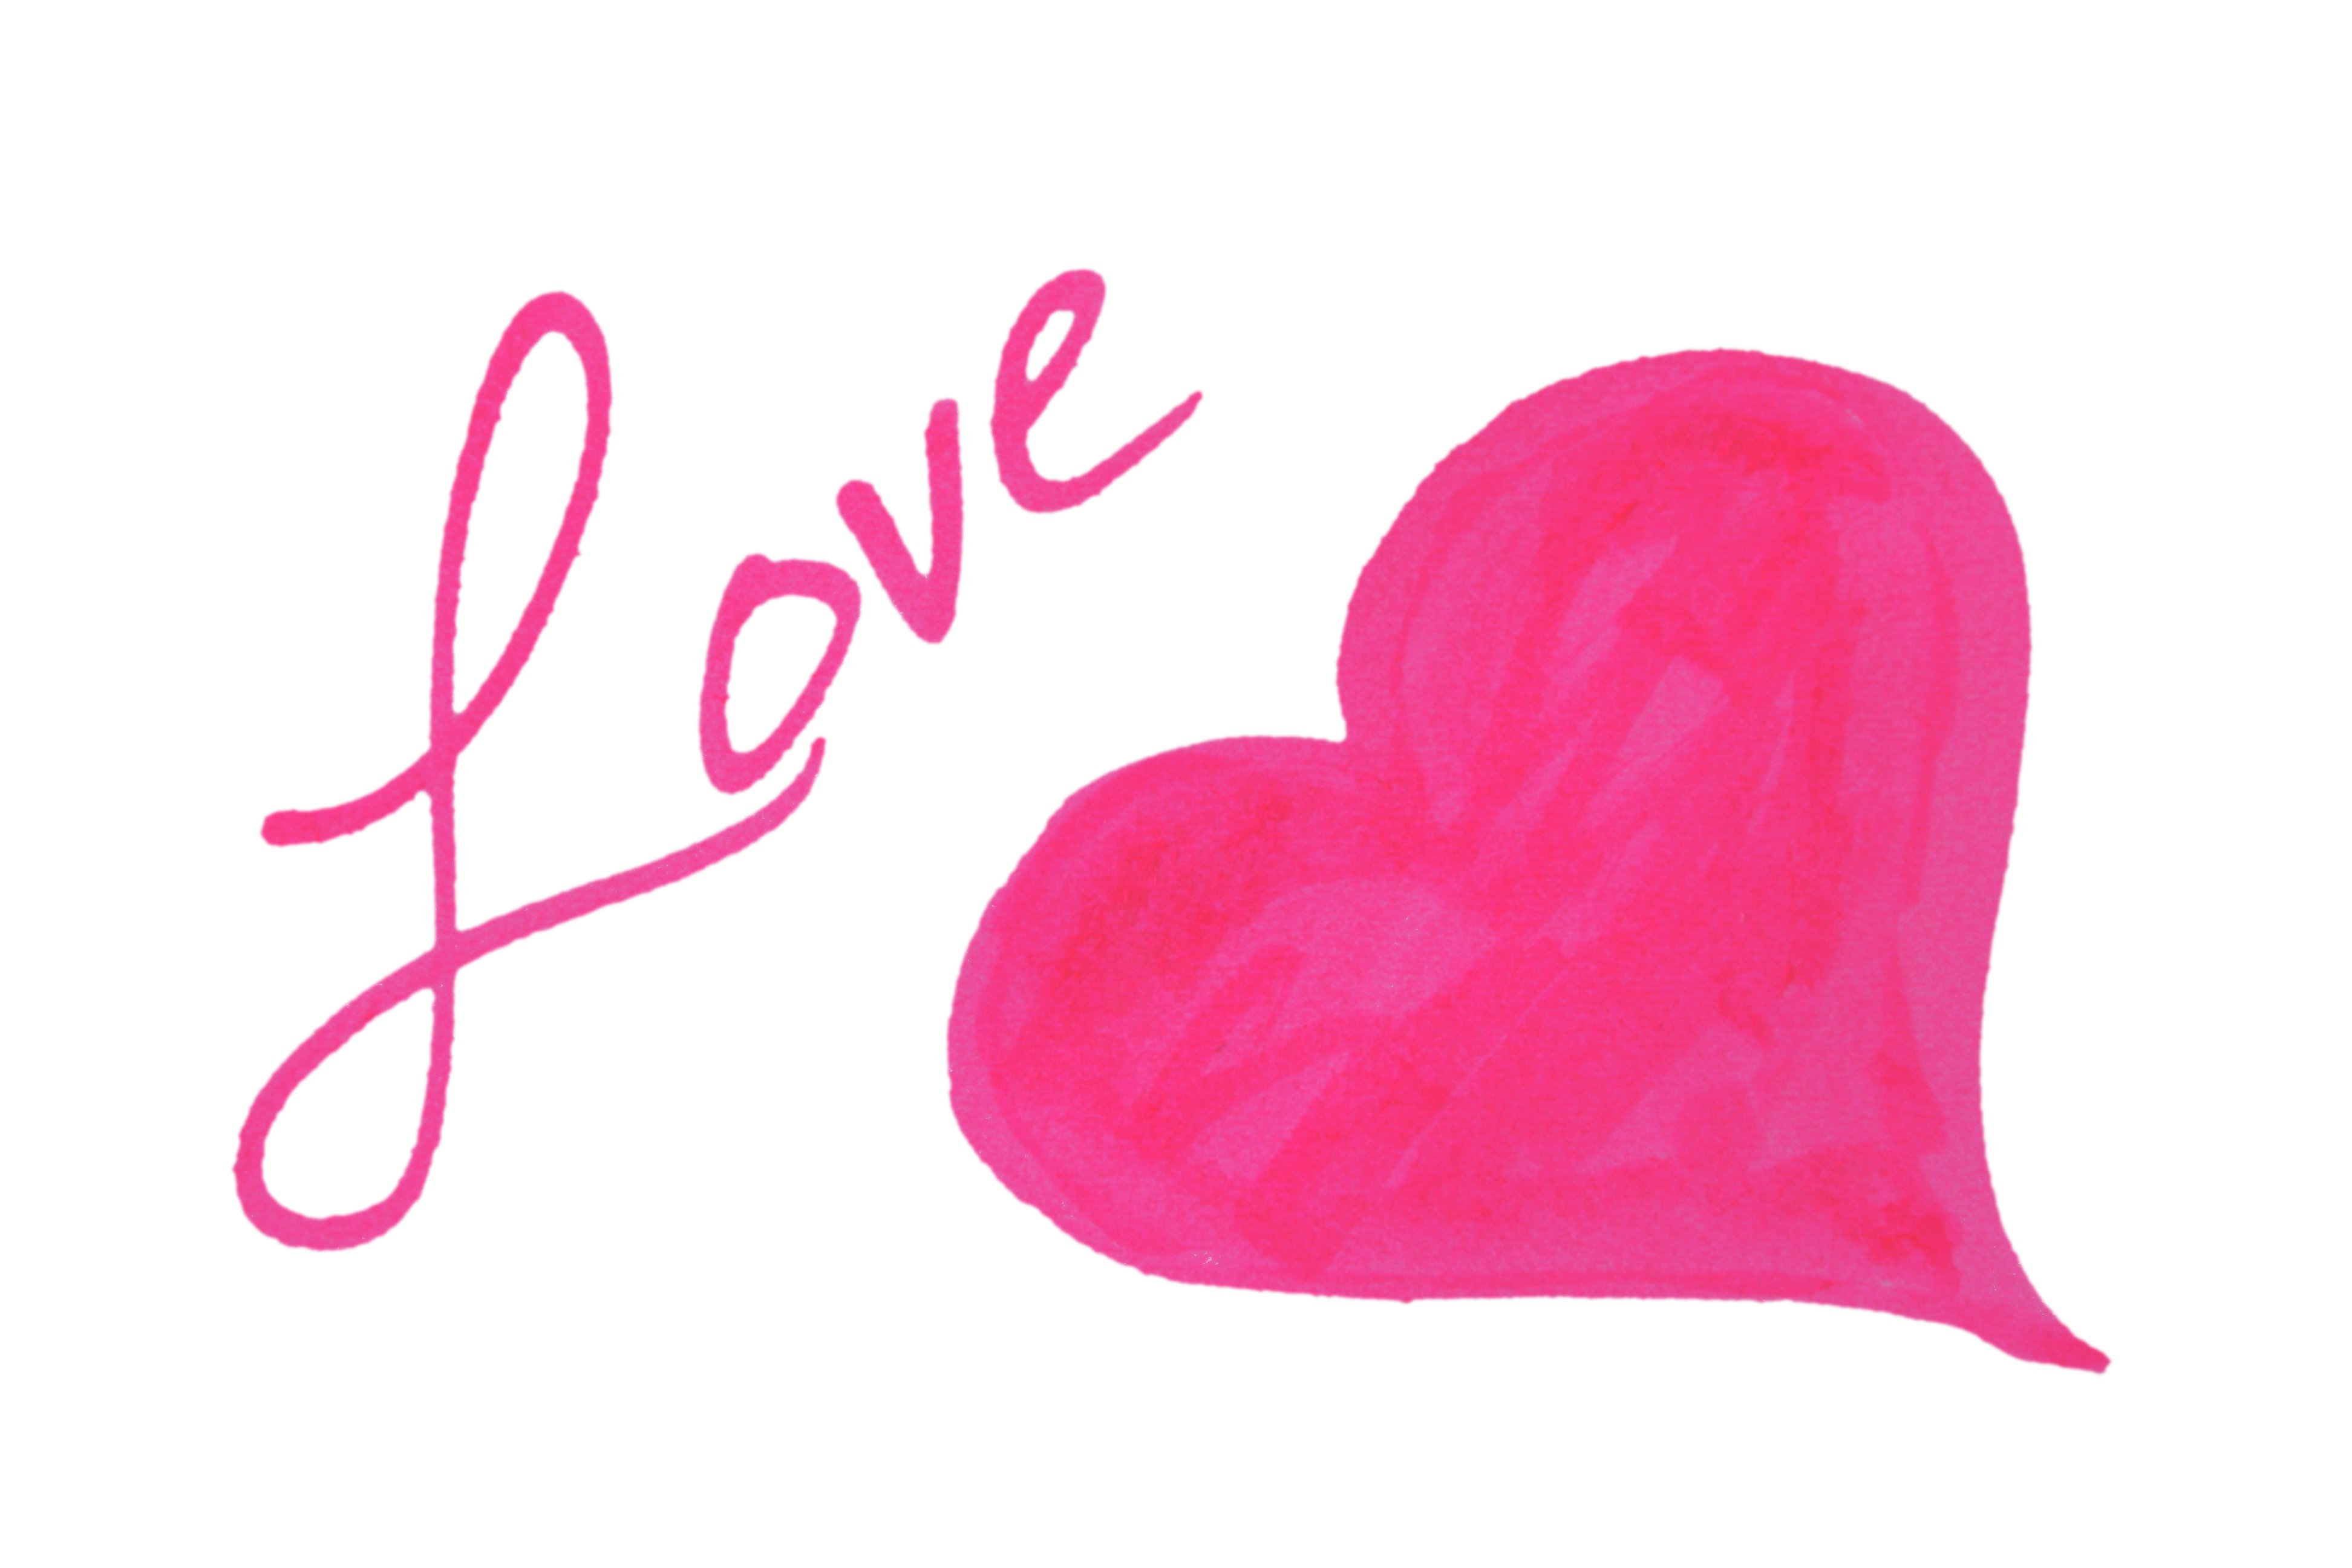 Gods clipart heart Clipart Clipart Images Heart Free